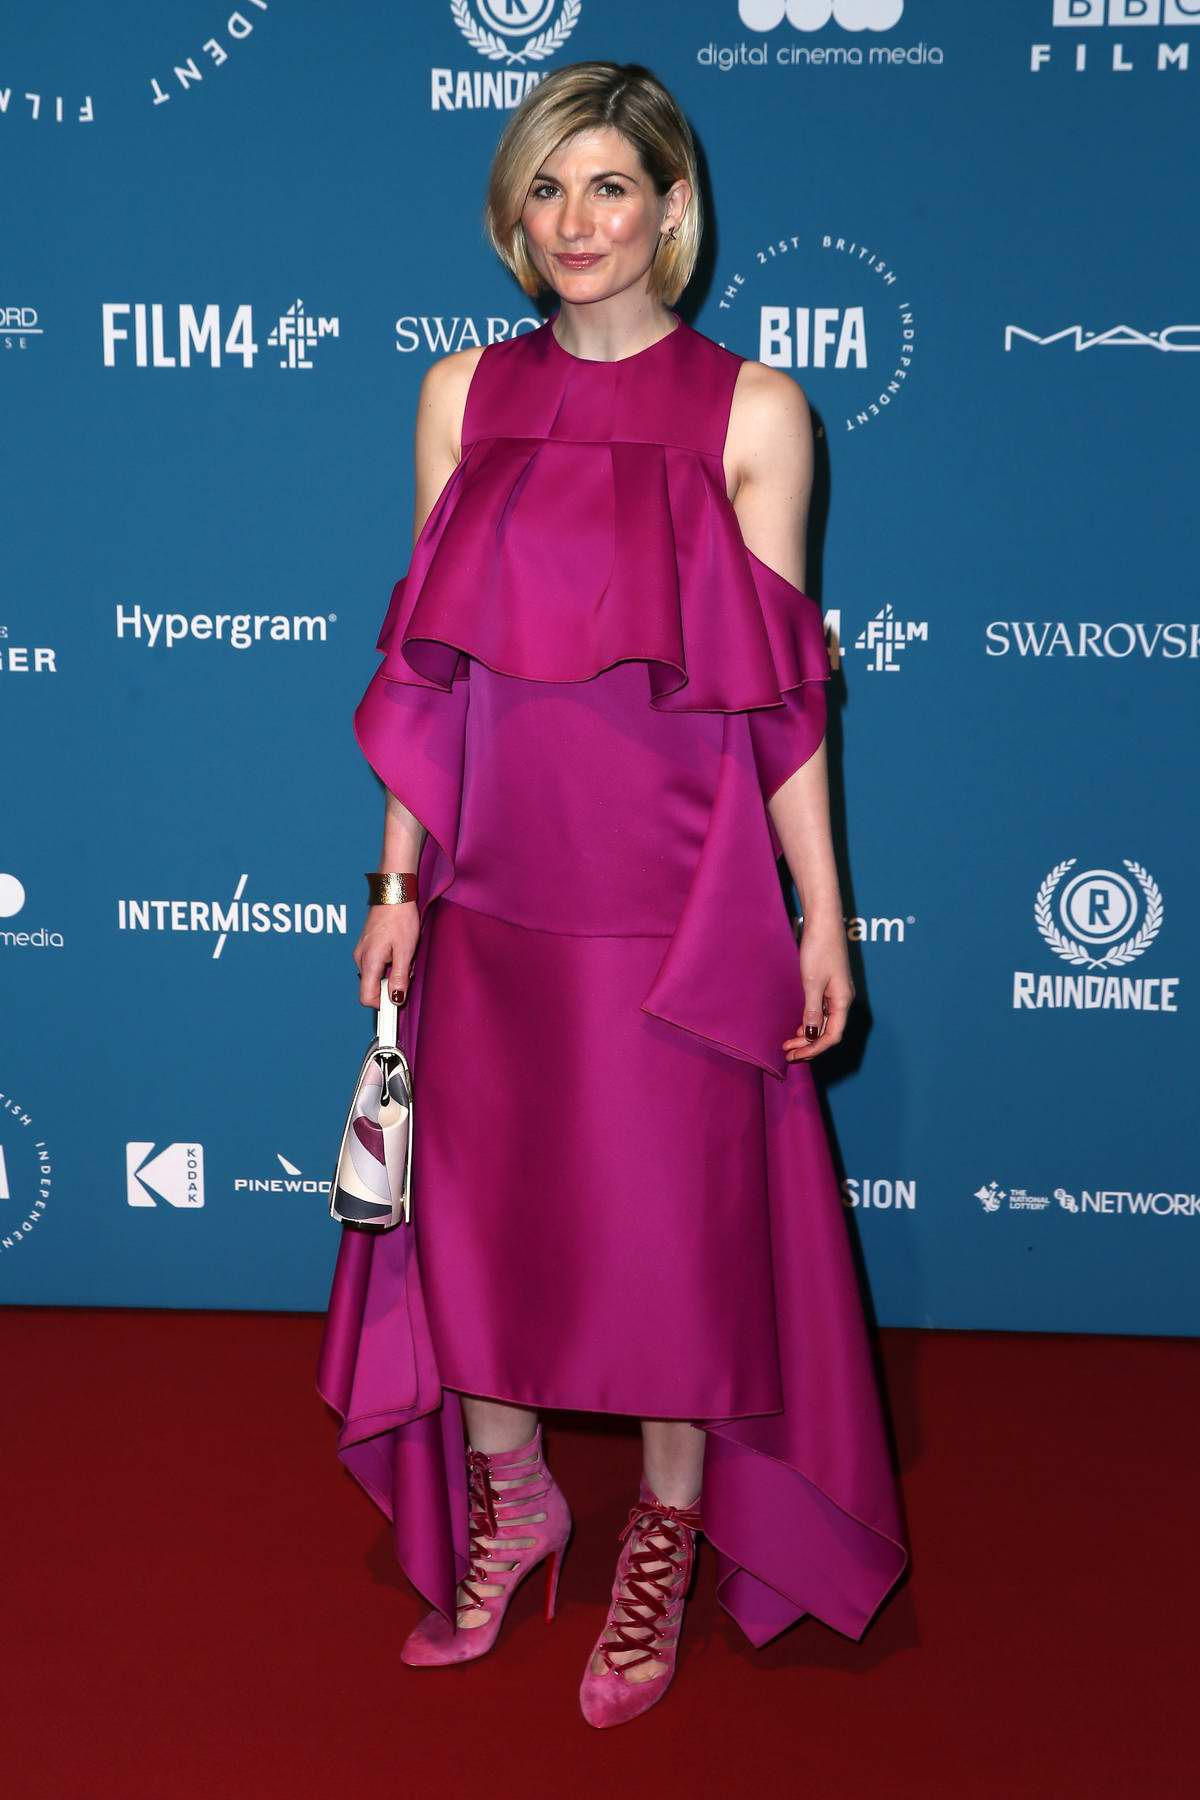 Jodie Whittaker attends the 21st British Independent Film Awards (BIFA 2018) in London, UK